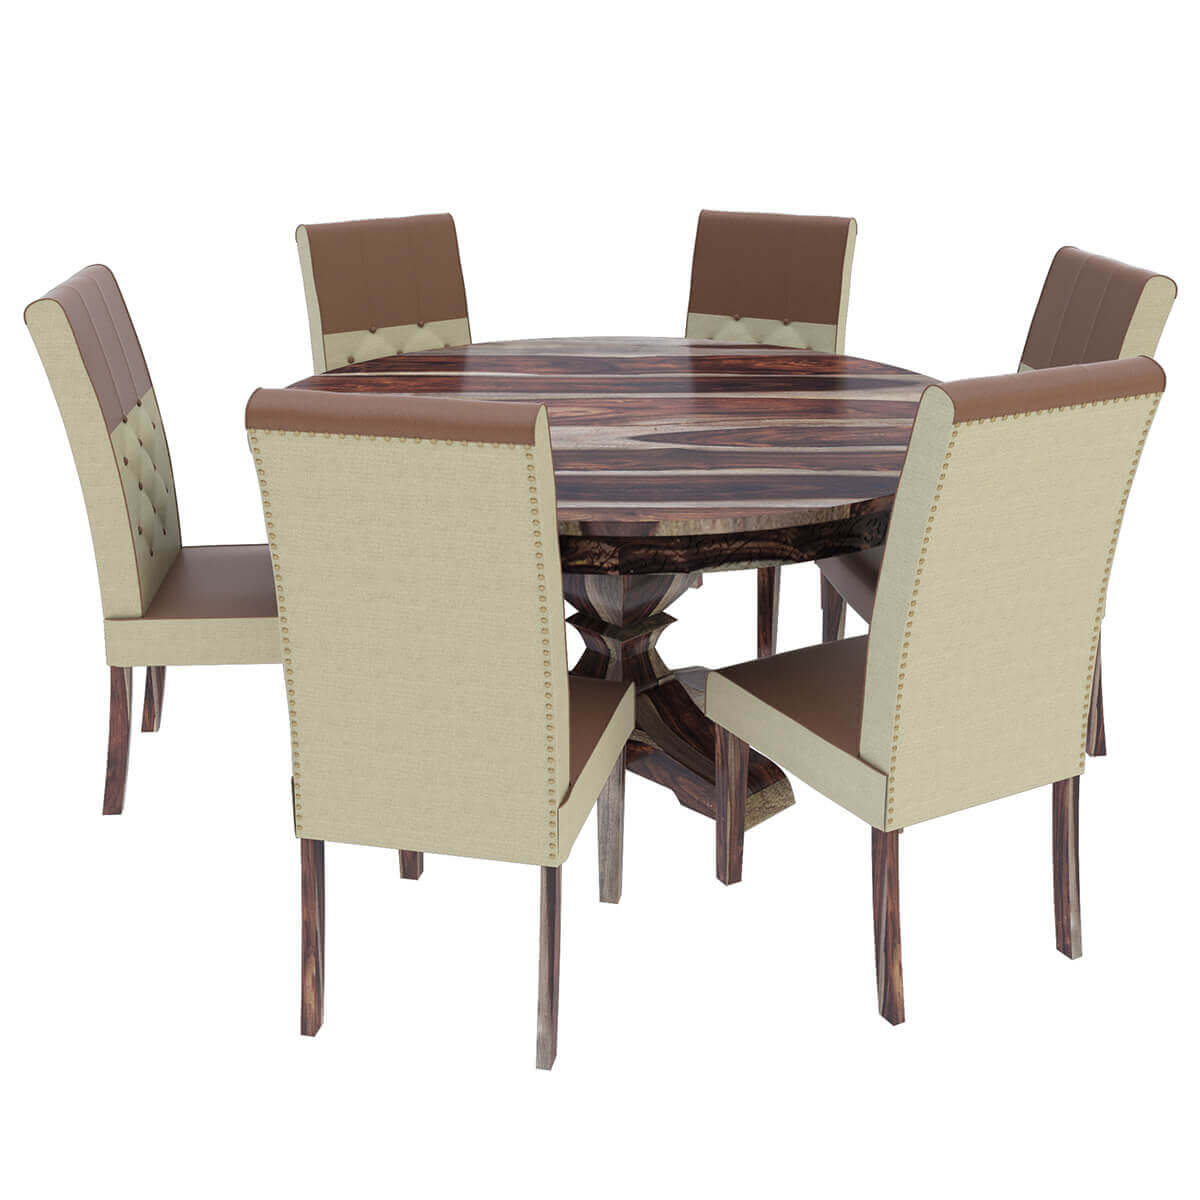 Round Table And Chairs For 6: Hosford Handcrafted Solid Wood Round Dining Table And 6